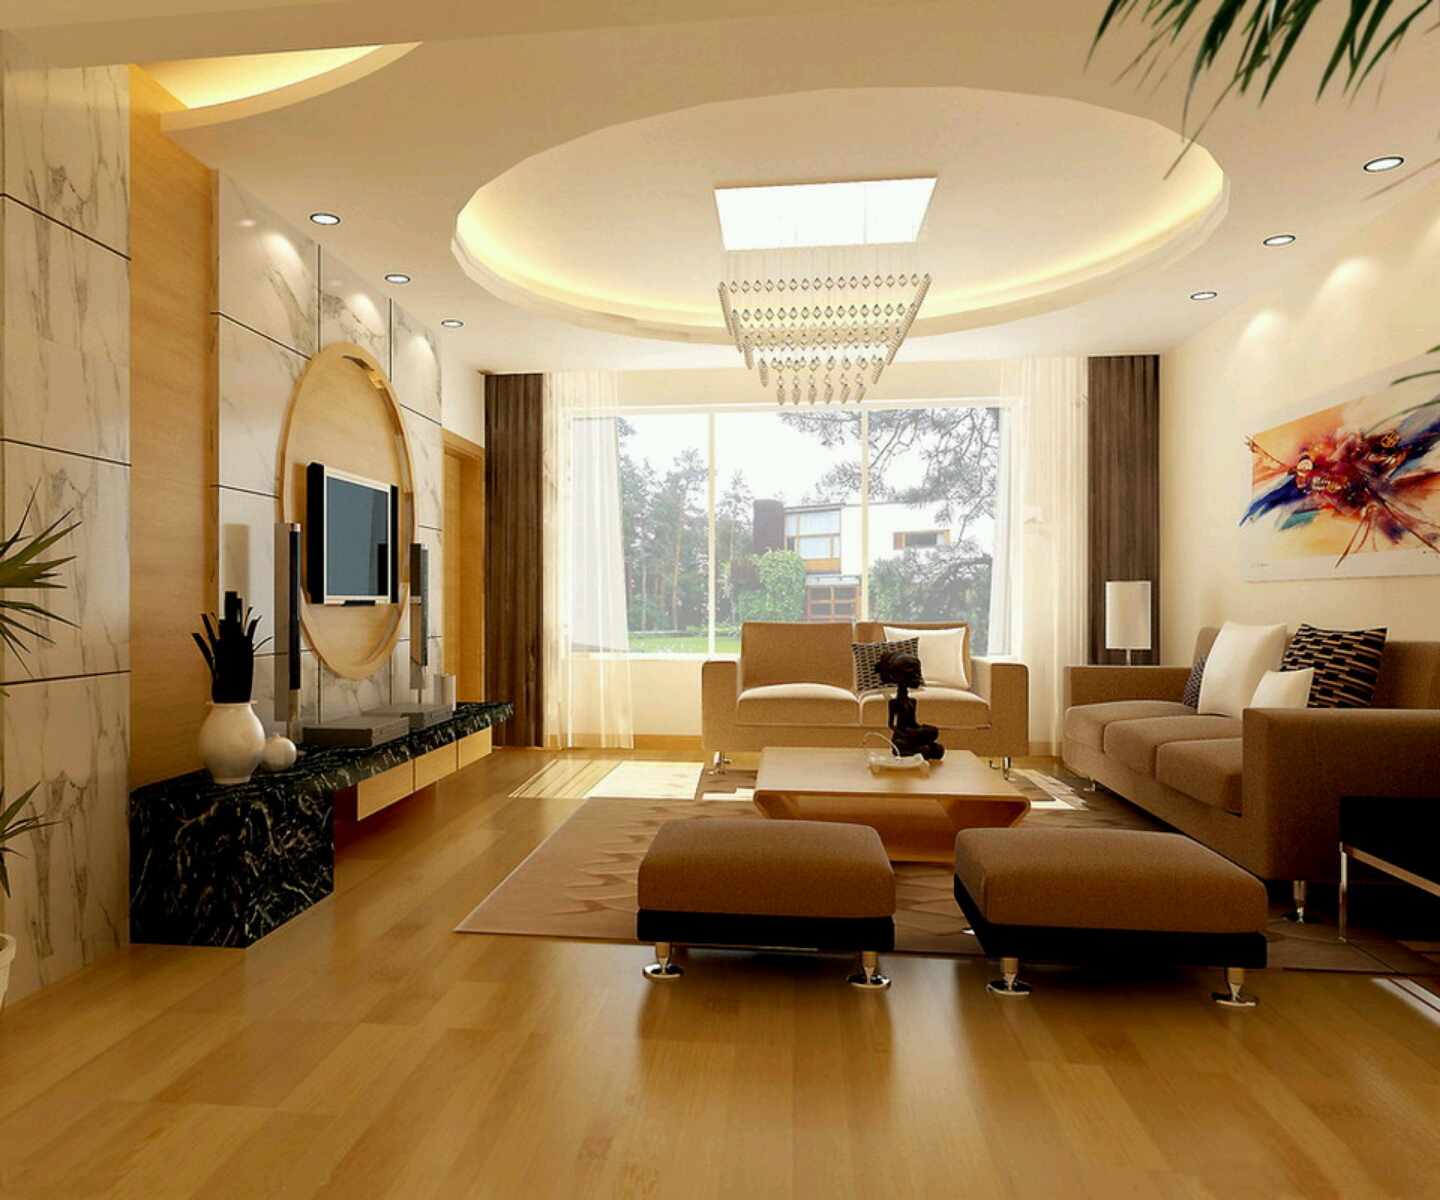 New home designs latest modern interior decoration for Home inner decoration